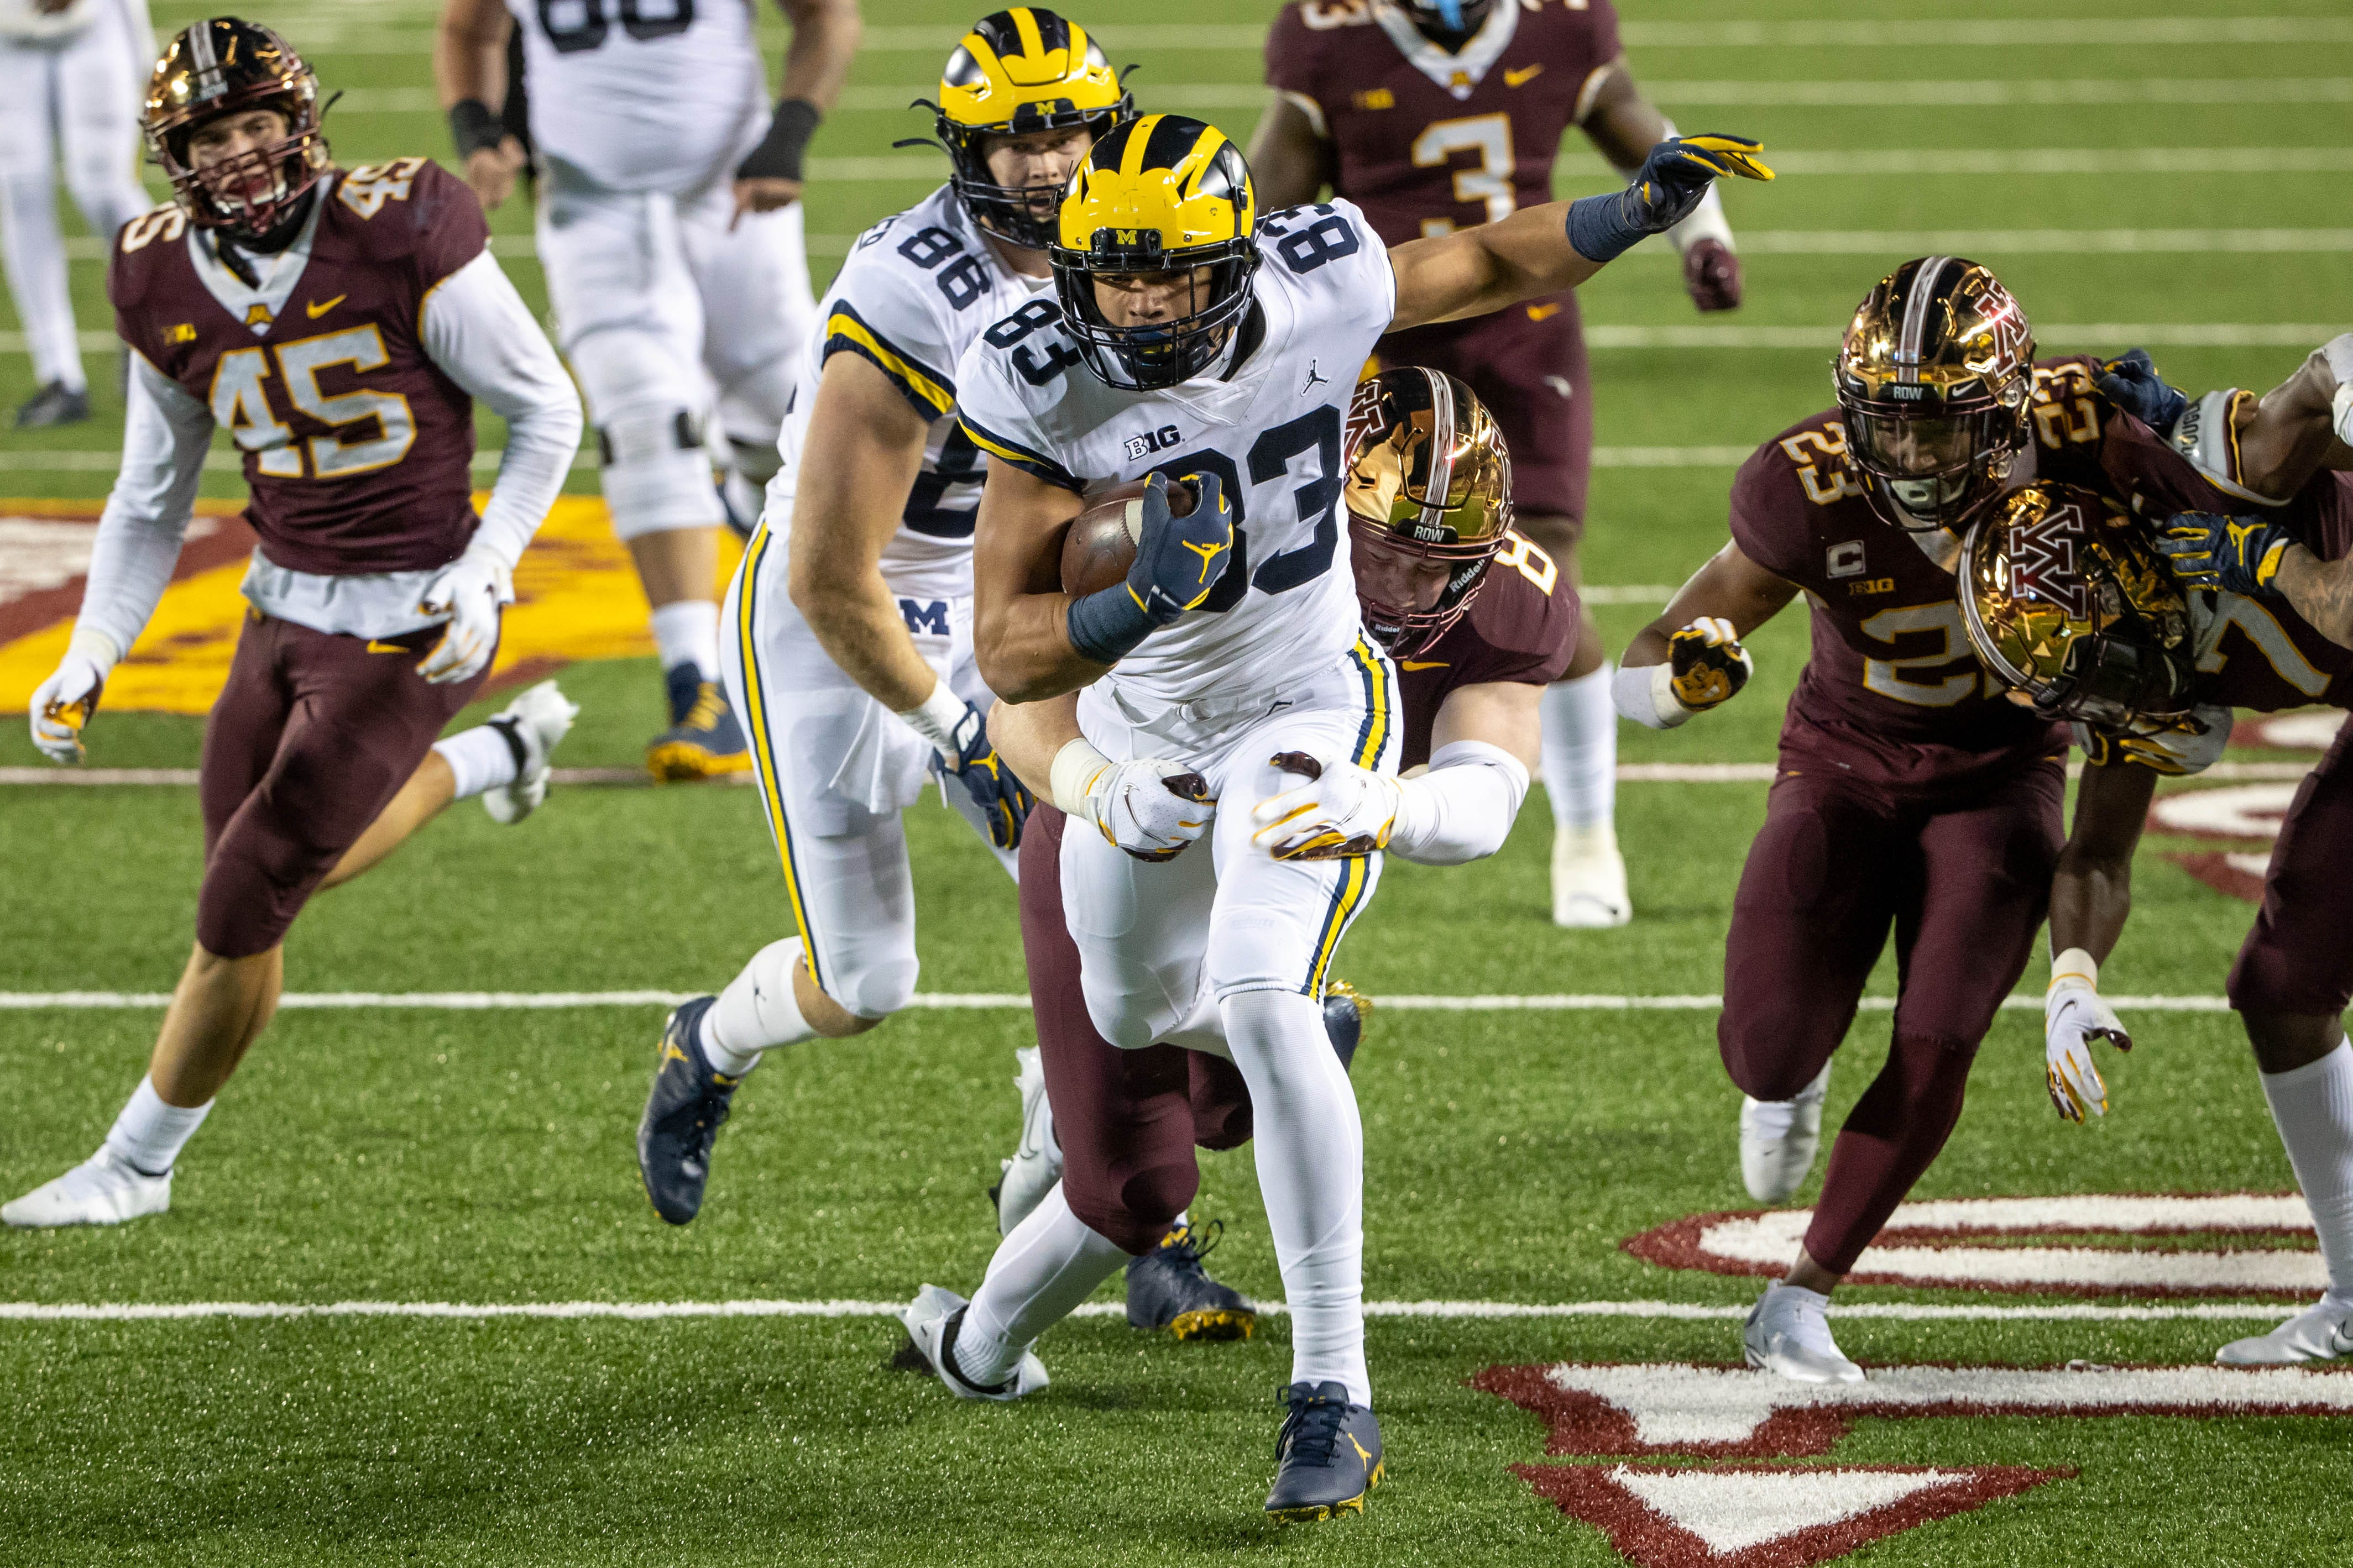 Michigan football's Erick All bulked up this summer with the help of this fellow Wolverine